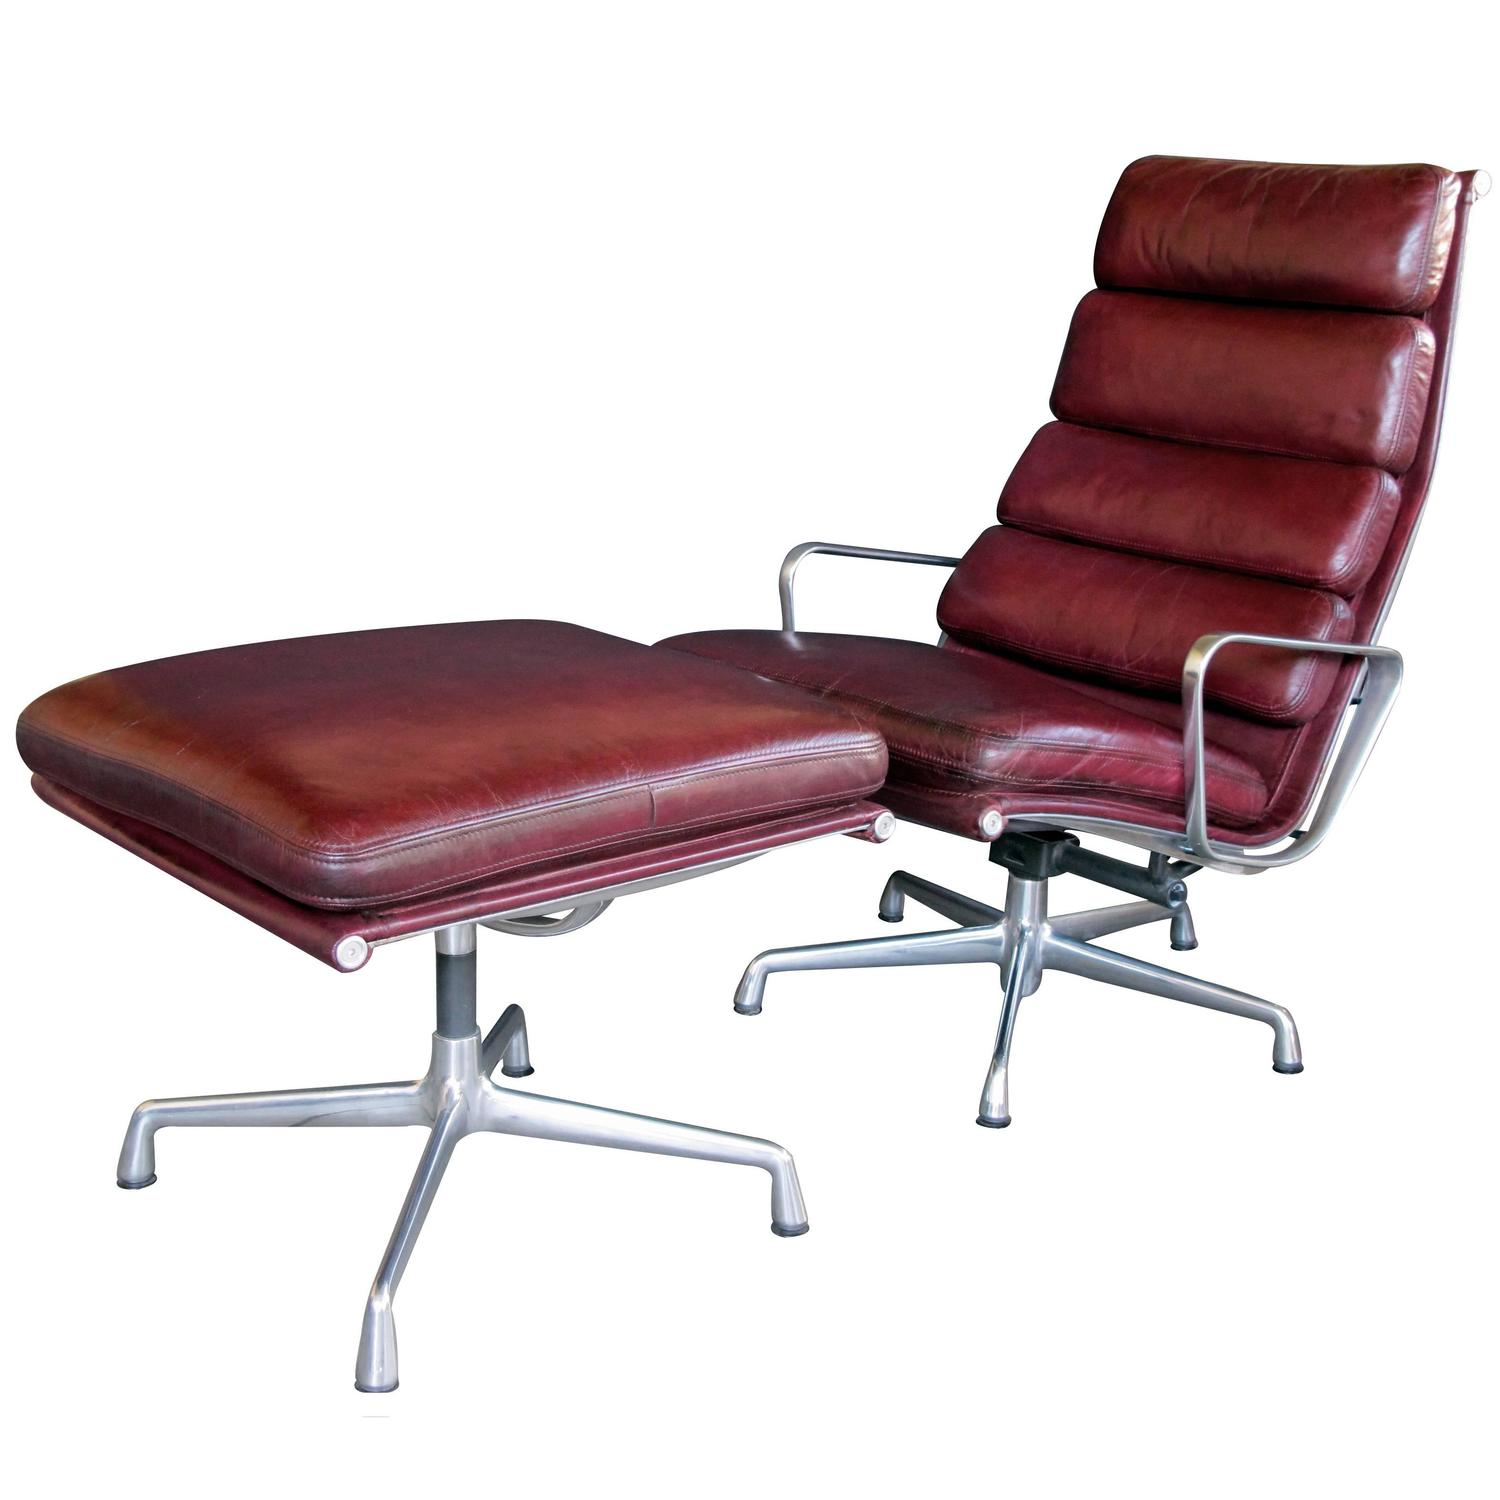 Classic American Eames for Herman Miller Executive Swivel Lounge Chair at 1st